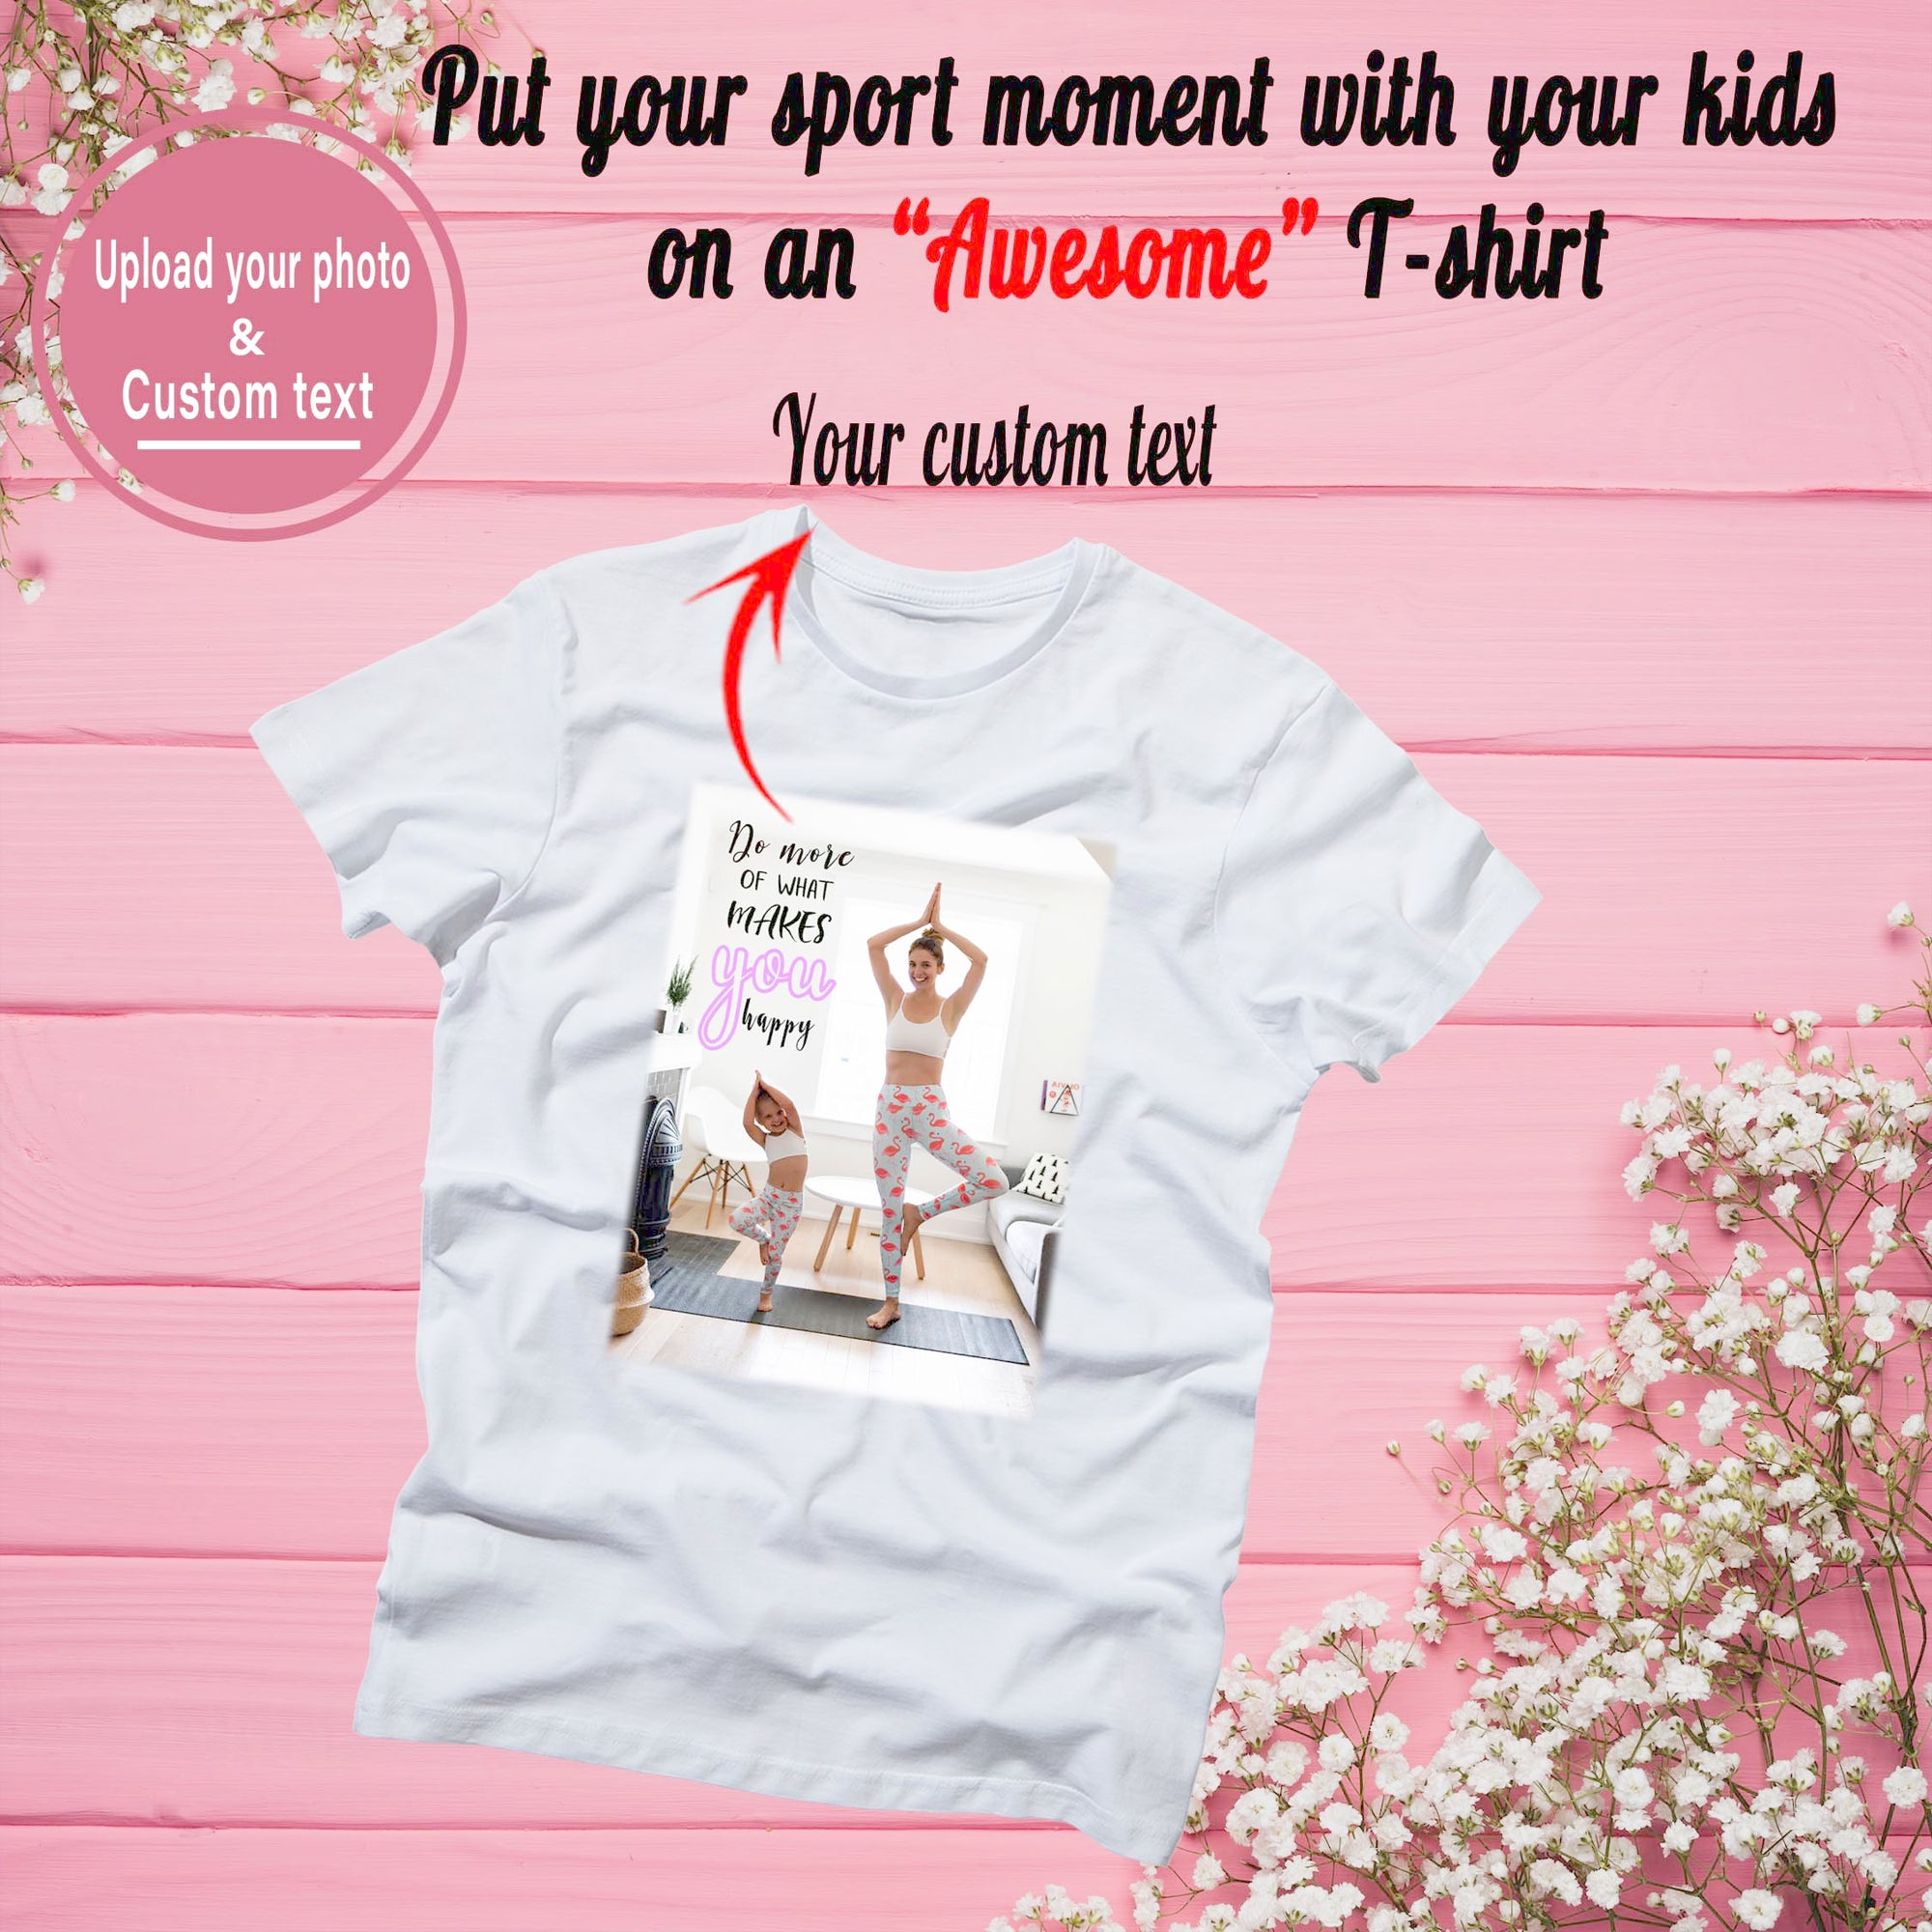 PERSONALIZED UNISEX T- SHIRT - UPLOAD YOUR SPORT MOMENT WITH YOUR KIDS ON YOUR T- SHIRT